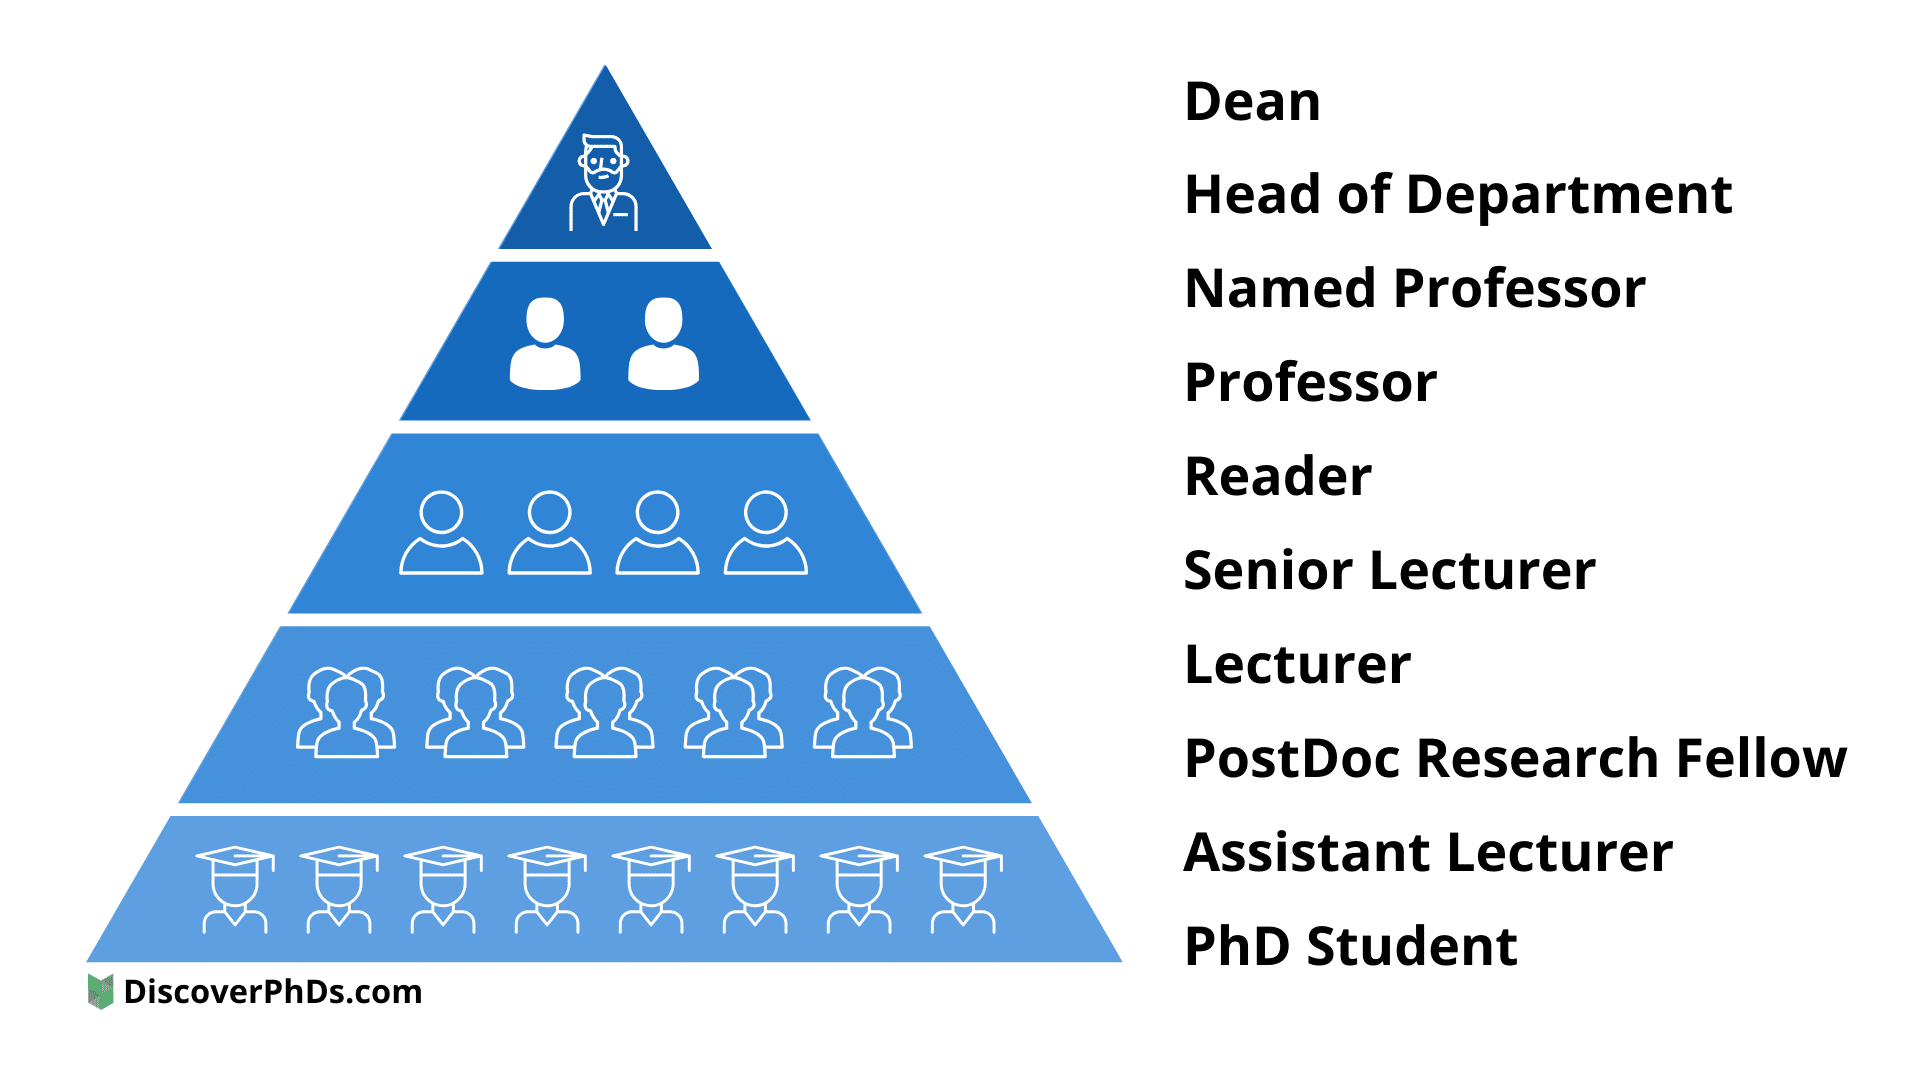 Academic Titles and Ranks in UK Universities